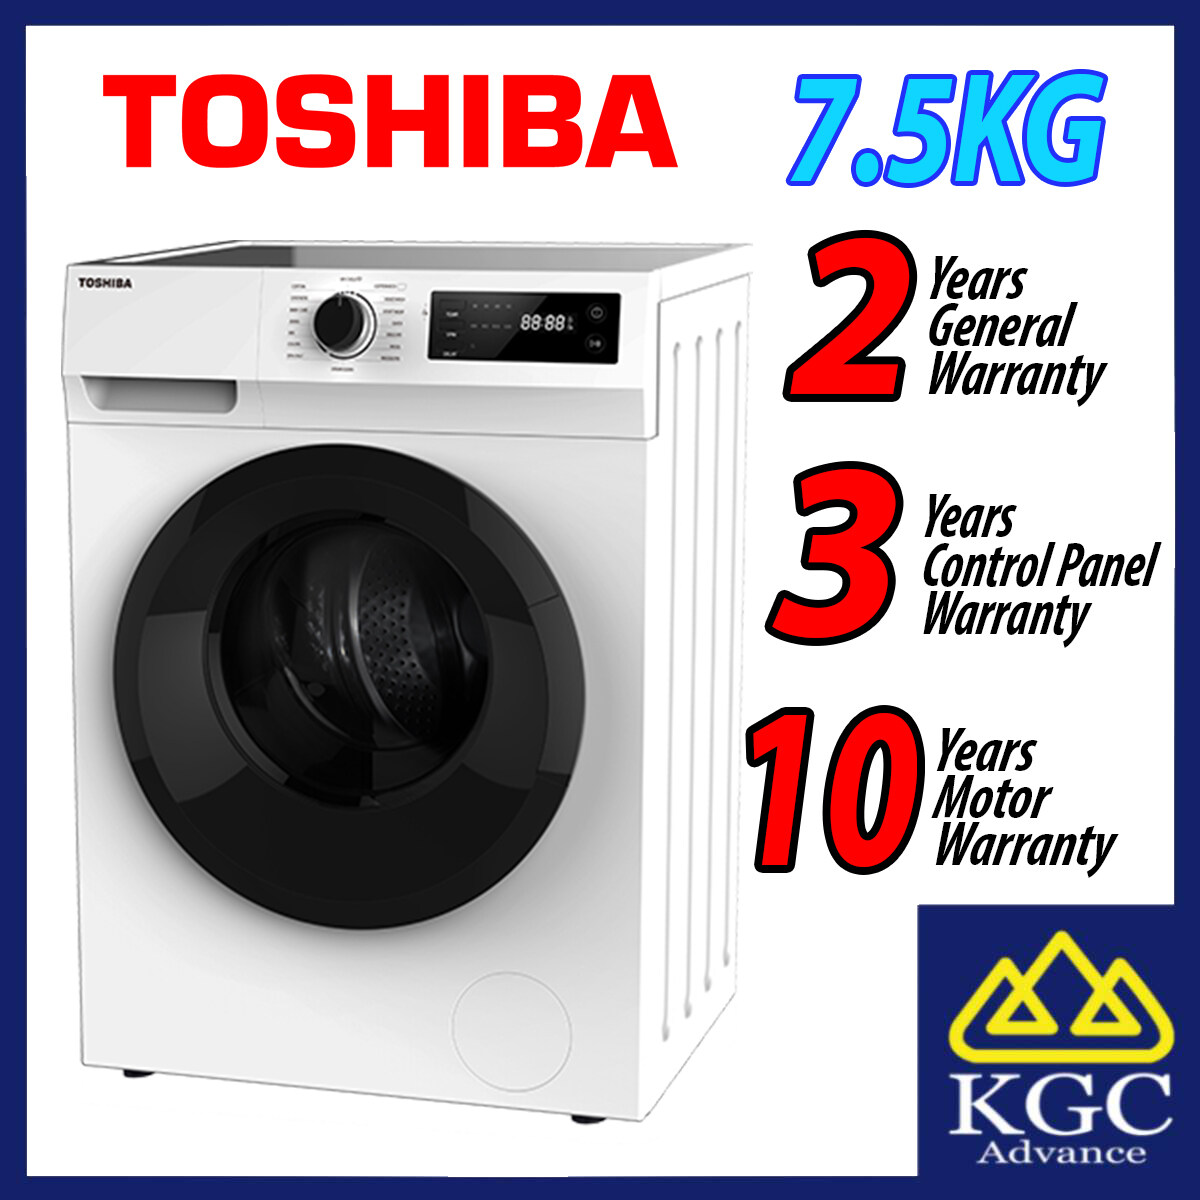 TOSHIBA 7.5KG FRONT LOAD REAL INVERTER WASHER TW-BH85S2M (Free Shipping)